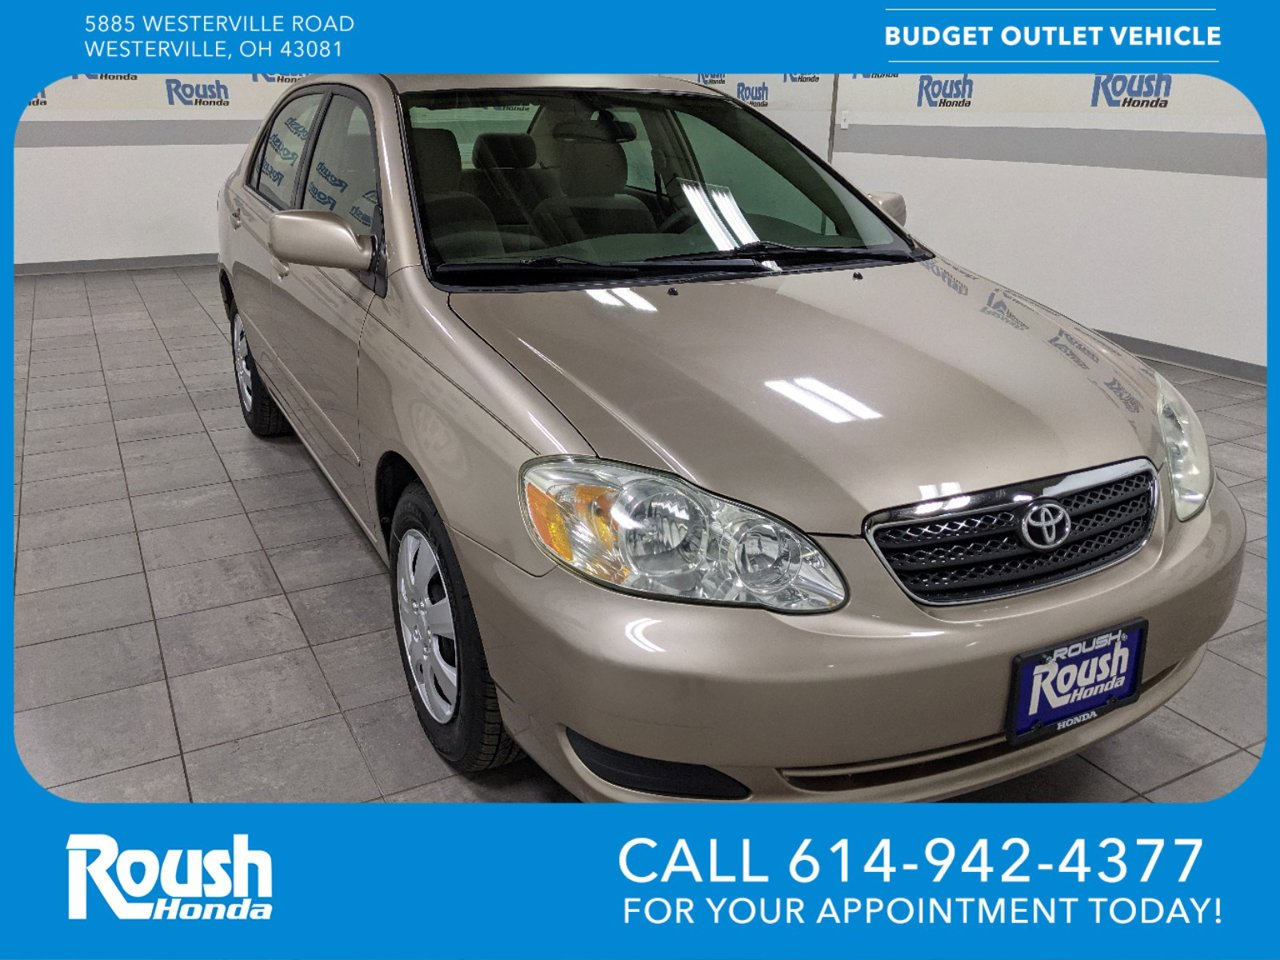 Used 2005 Toyota Corolla in Westerville, OH